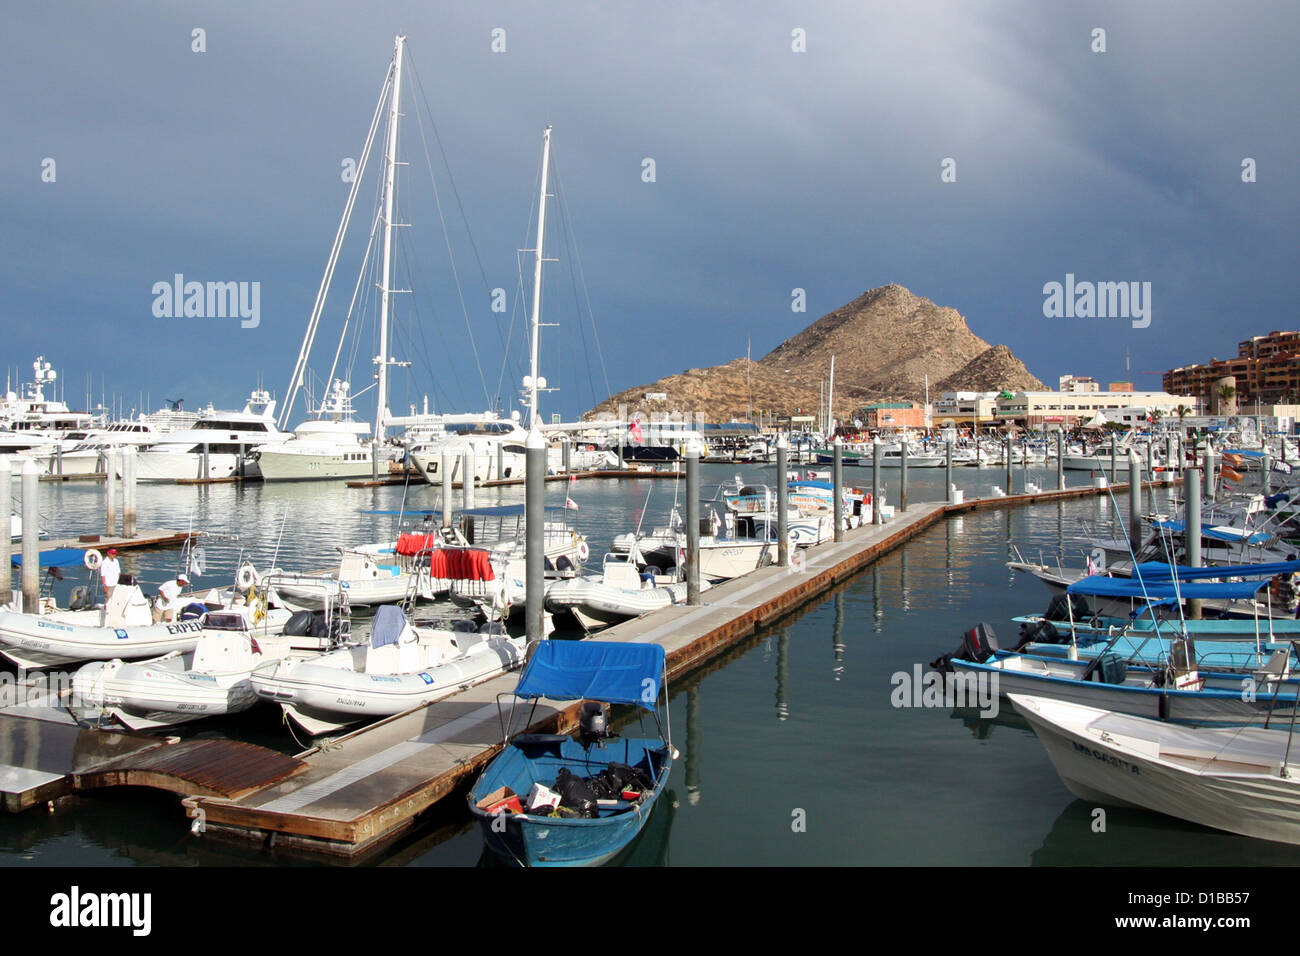 Boats and yachts at Cabo San Lucas Marina on a cloudy day Stock Photo